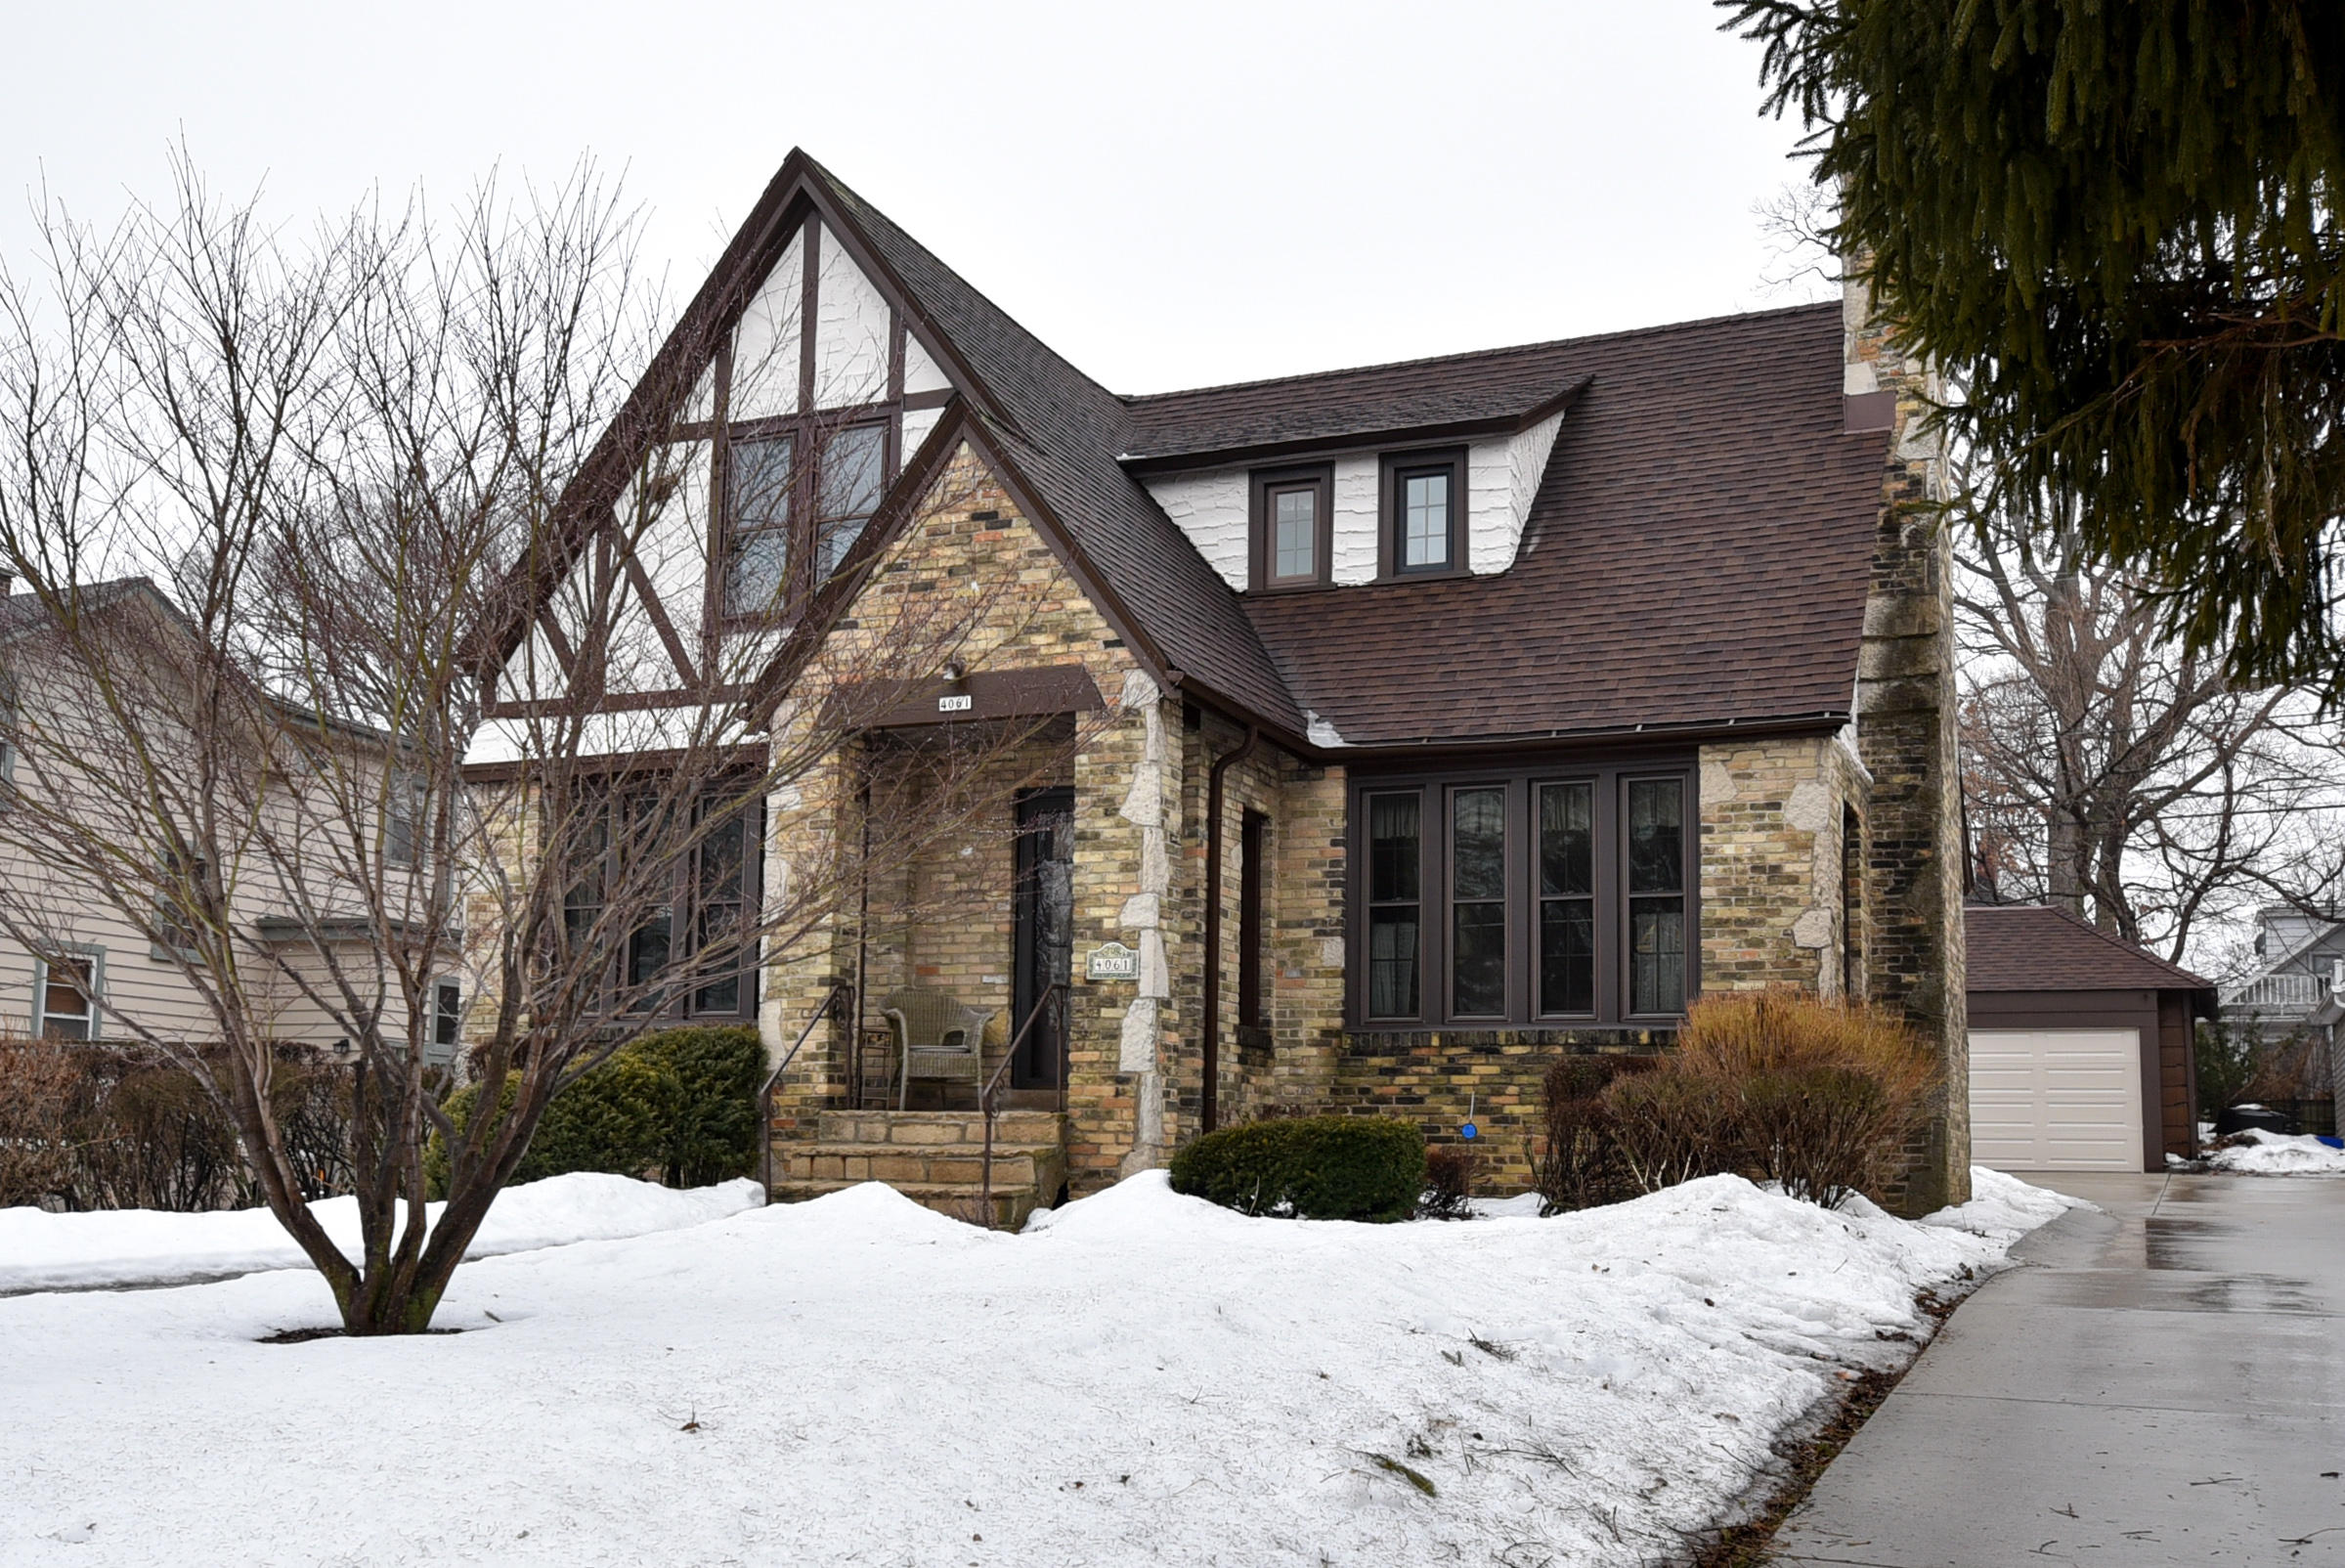 4061 N Farwell Ave Shorewood, WI 53211 Property Image